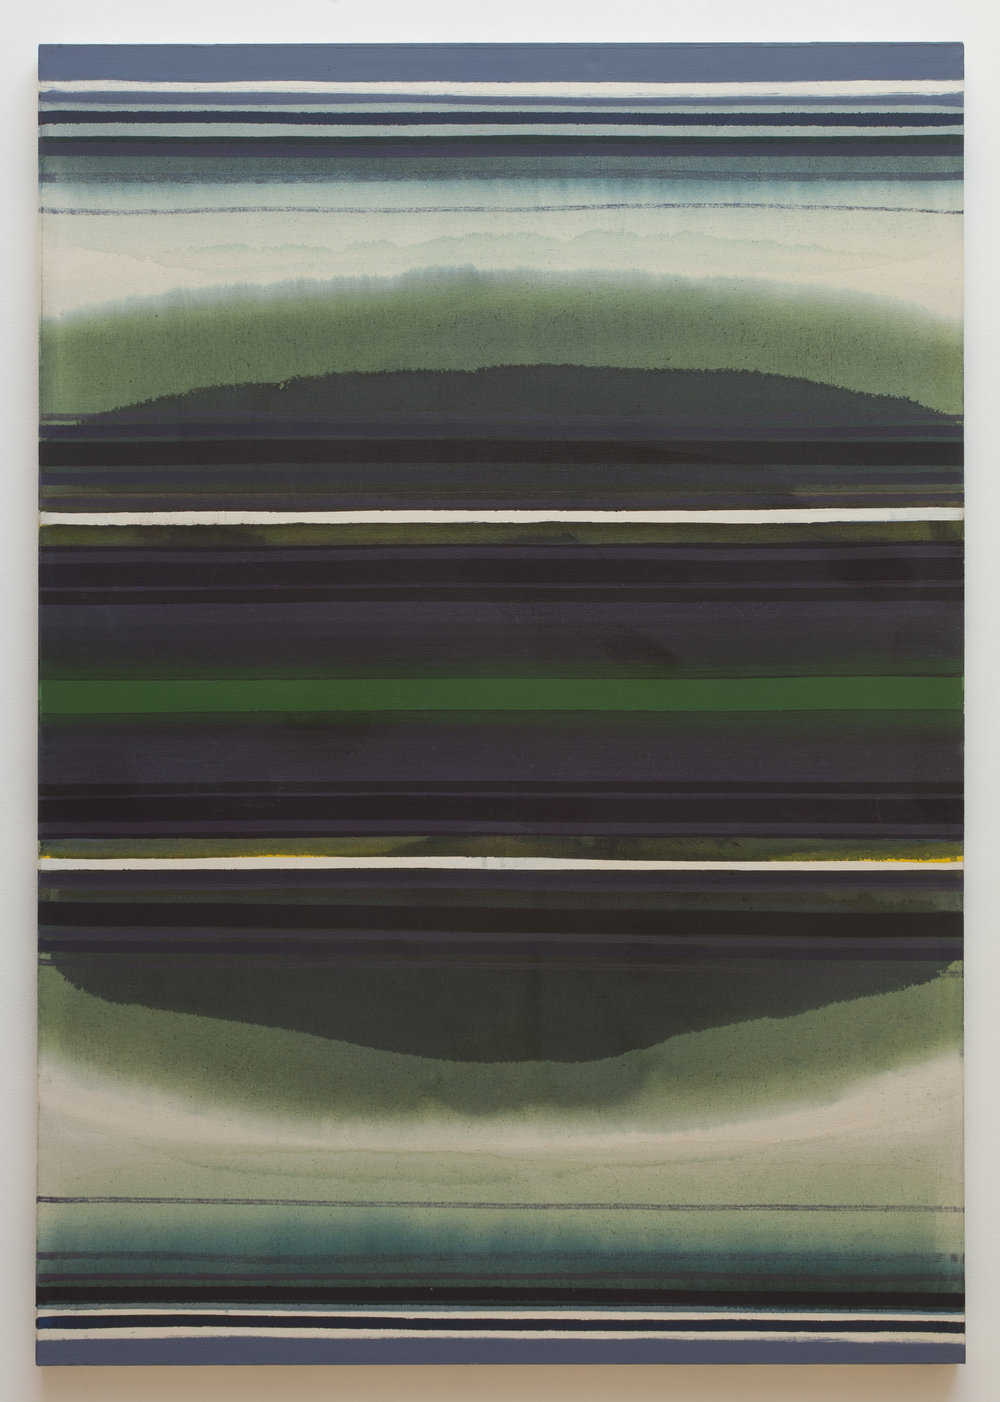 Coast Stripe  (1961), oil on canvas, 74.5 x 52.5""